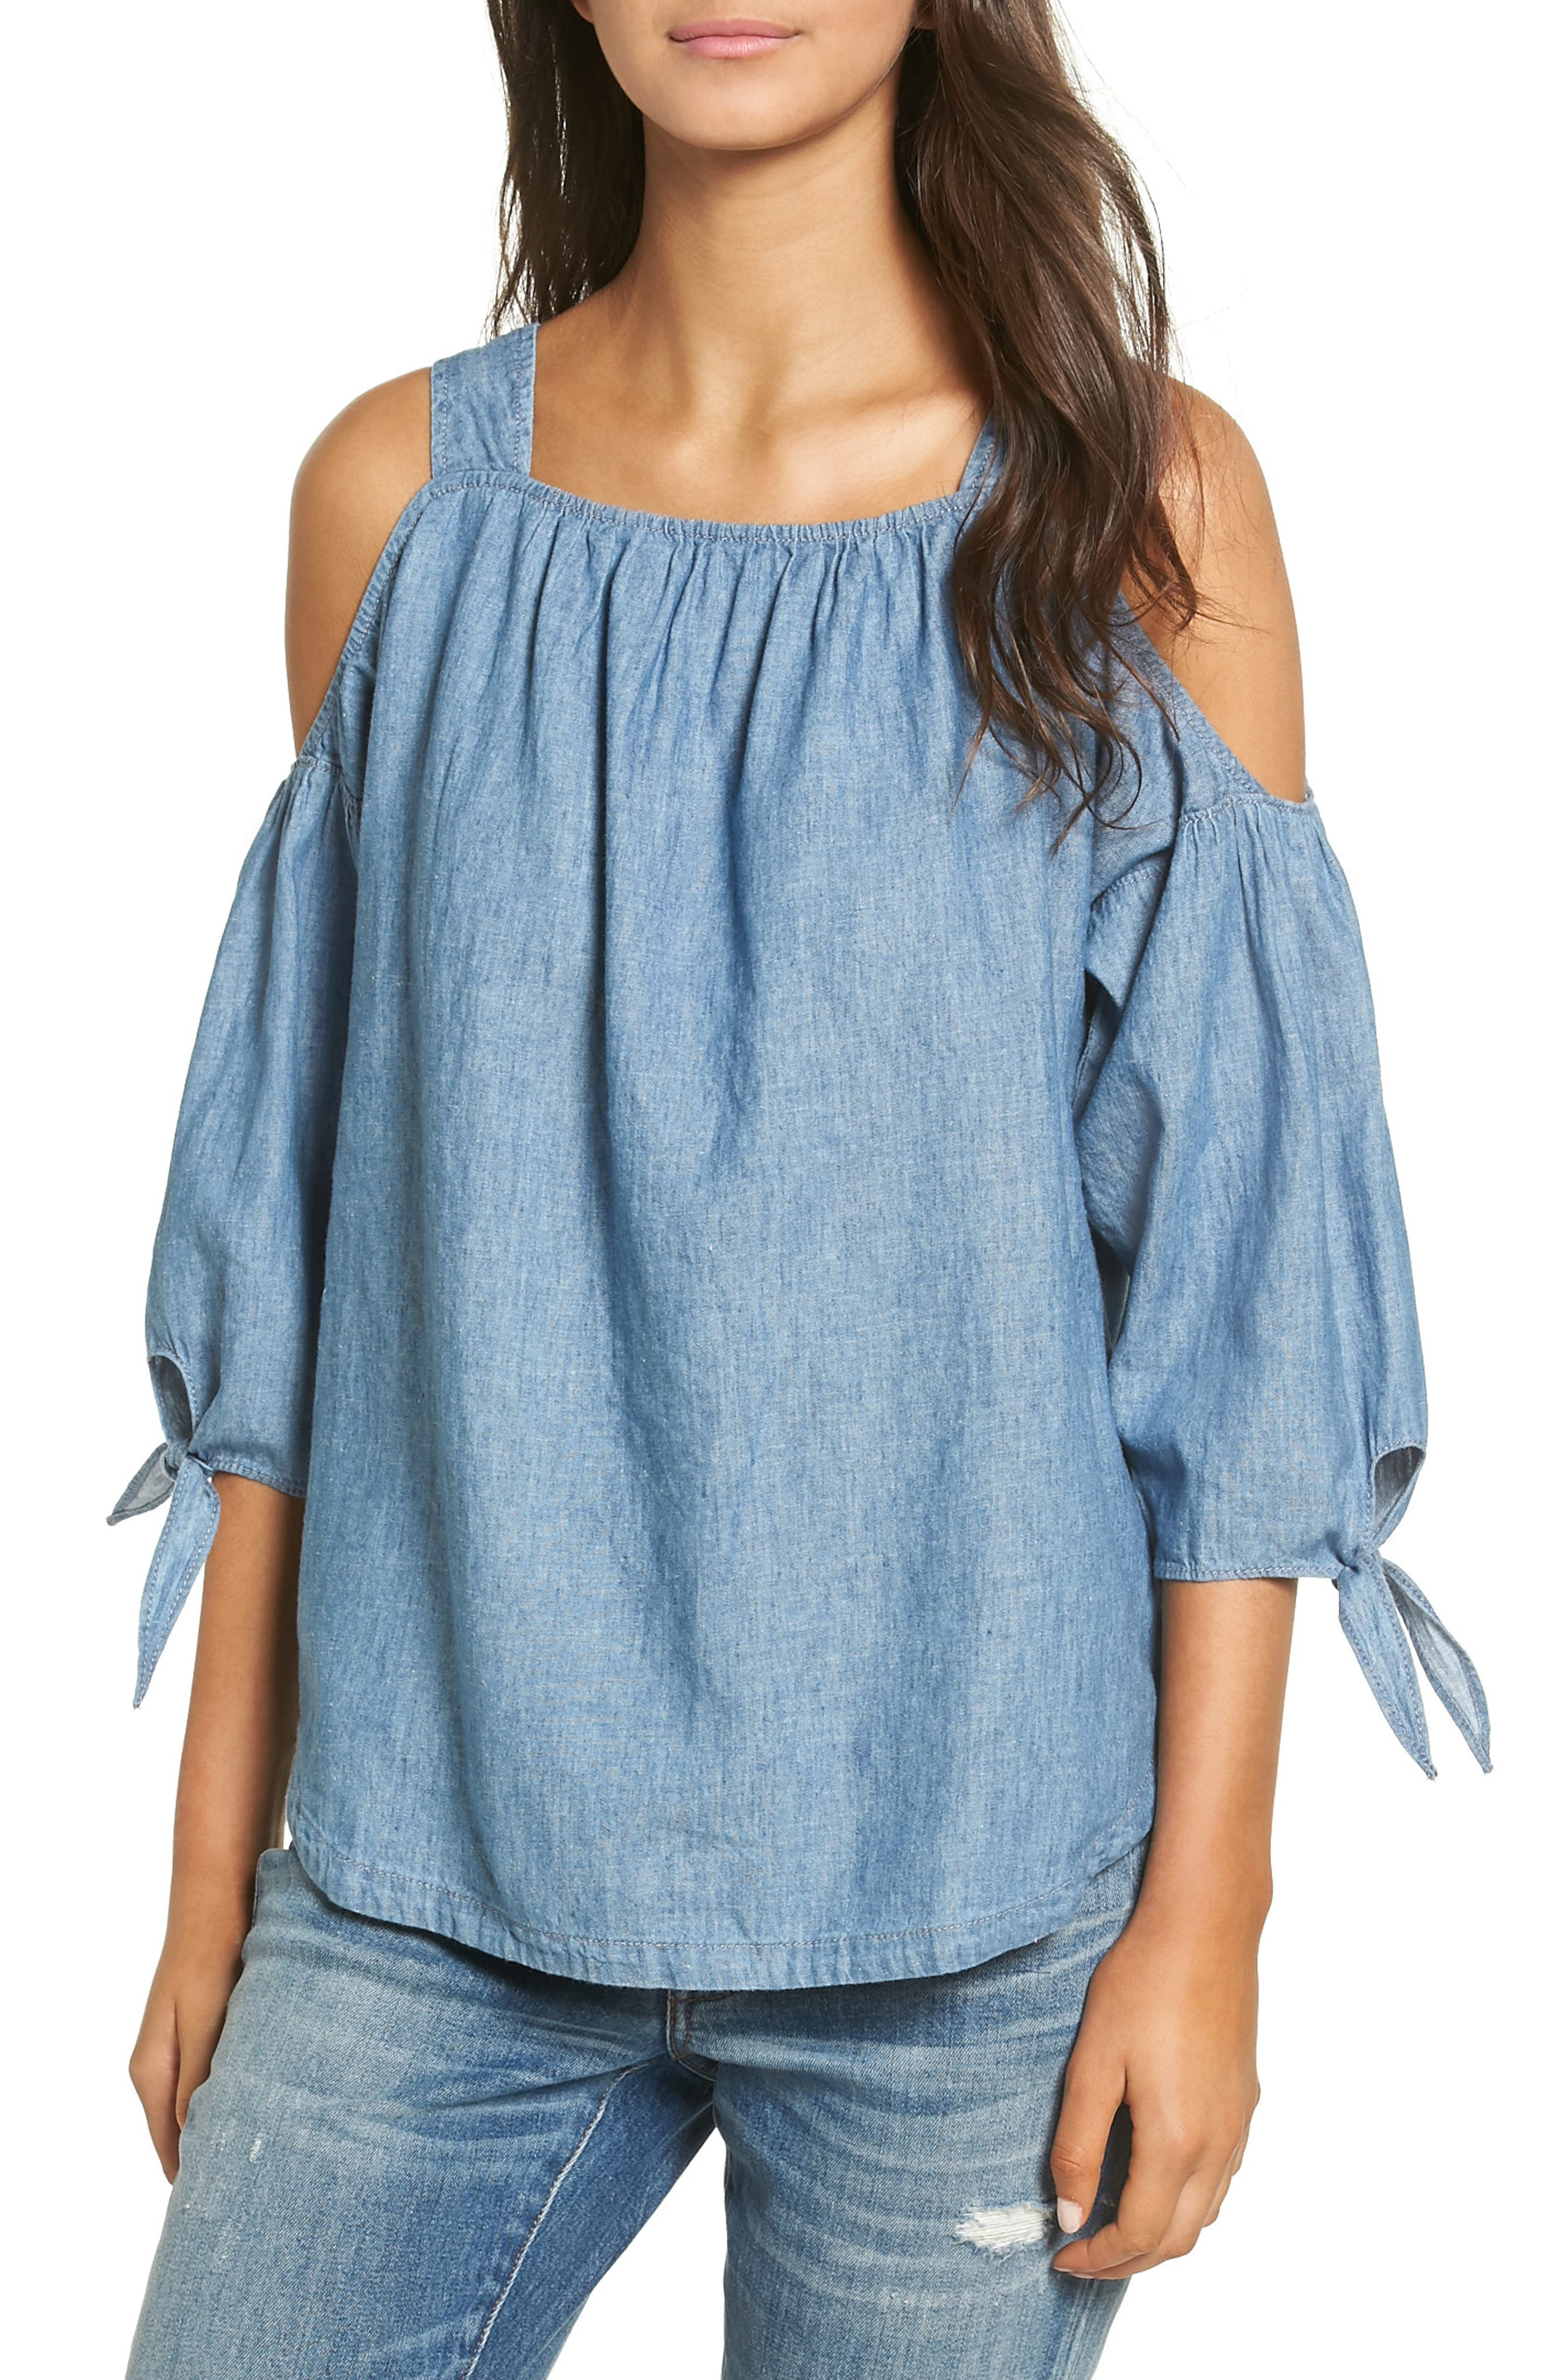 Main Image - Madewell Chambray Cold Shoulder Top